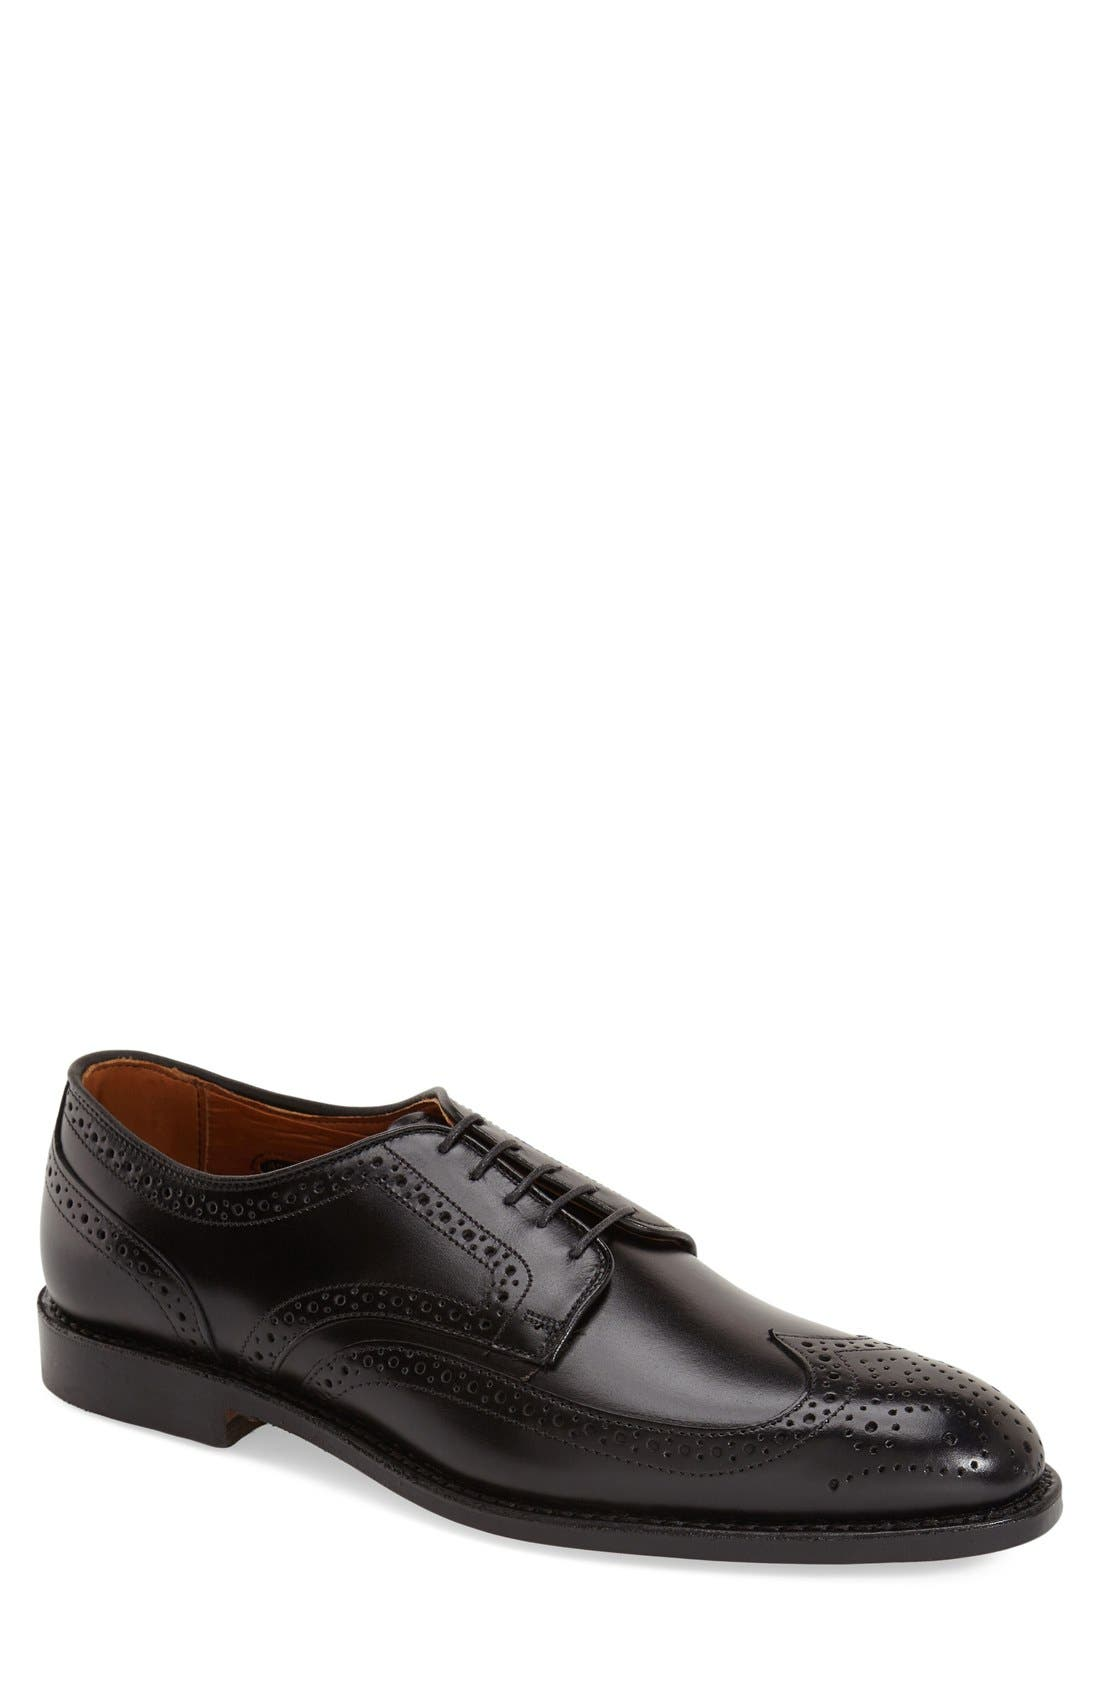 'Madison Park' Wingtip,                             Main thumbnail 1, color,                             Black Leather